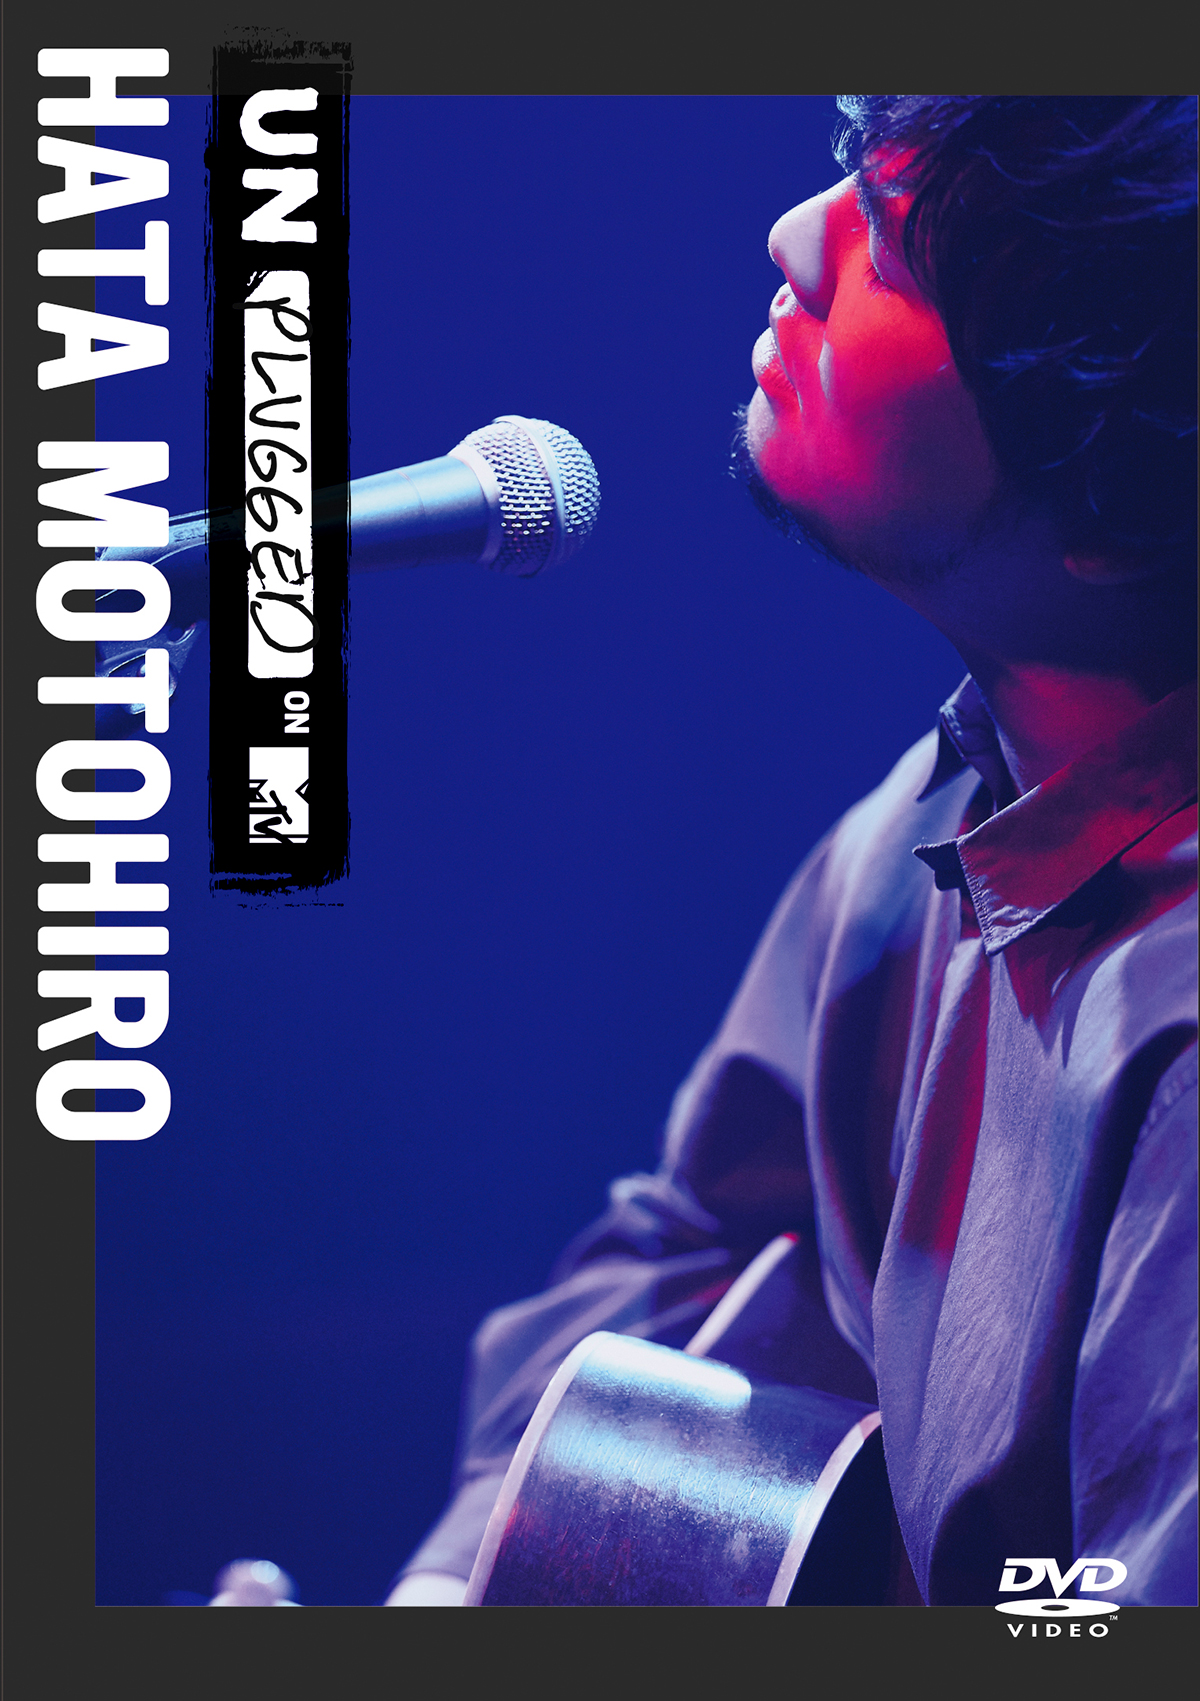 『MTV Unplugged: Hata Motohiro』DVD